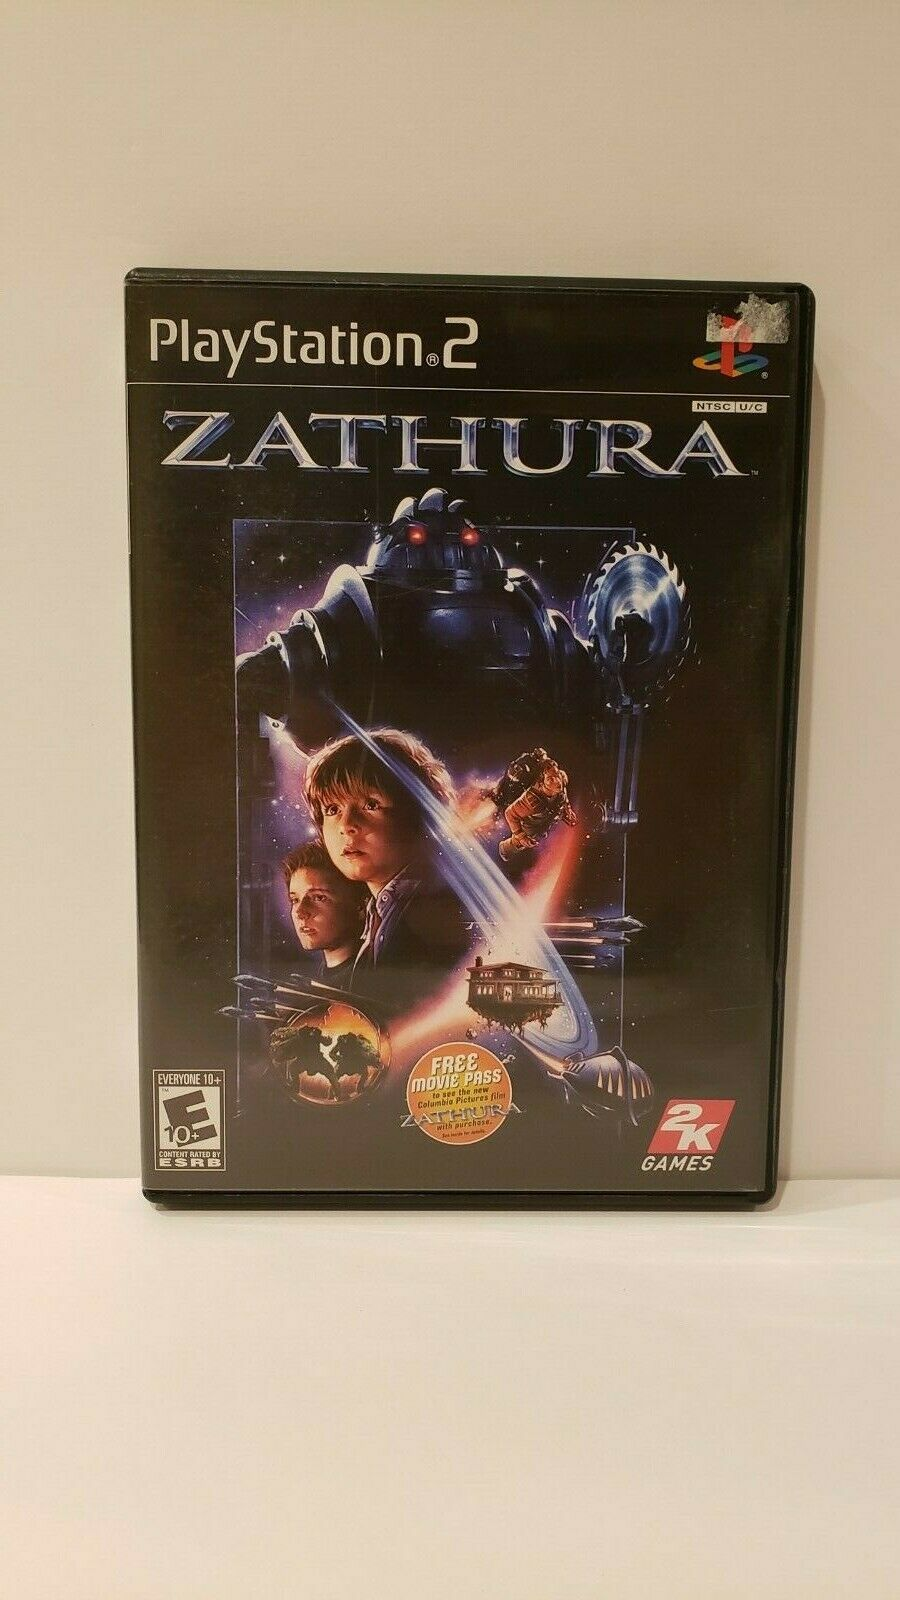 Zathura (Sony PlayStation 2, 2005) - Complete With Unused Movie Ticket - Tested